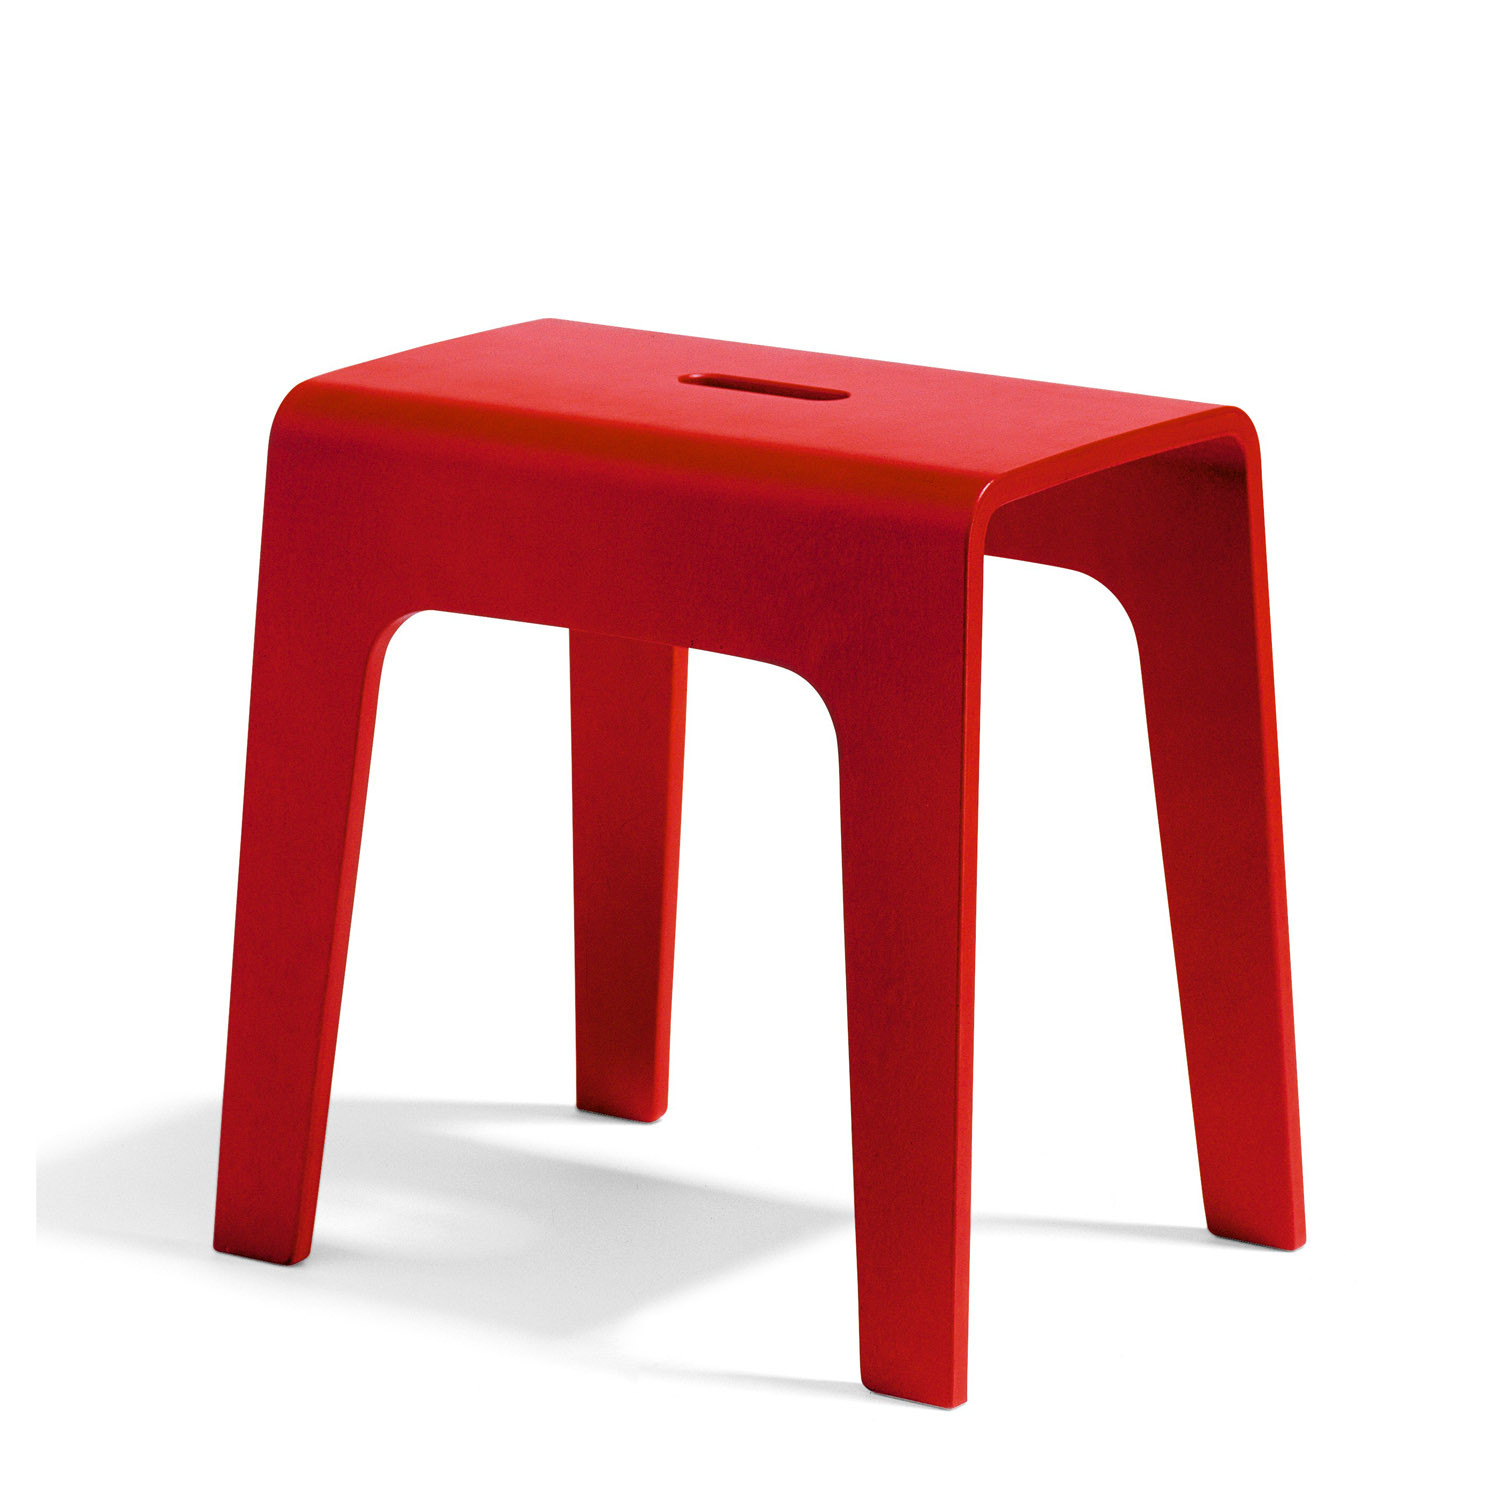 Bimbo Stool with Handle O60